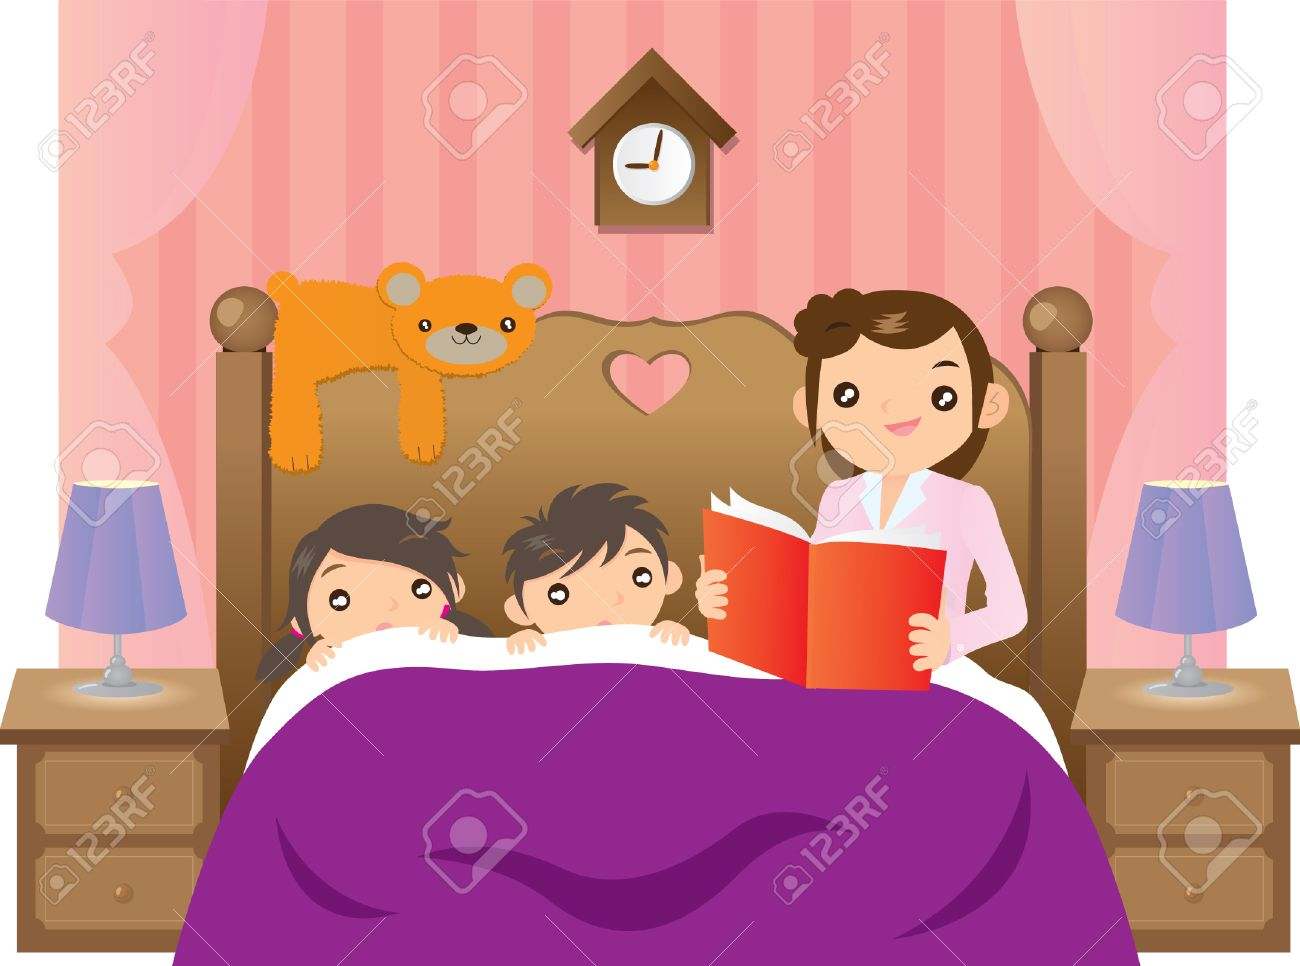 261 go to bed cliparts, stock vector and royalty free go to bed